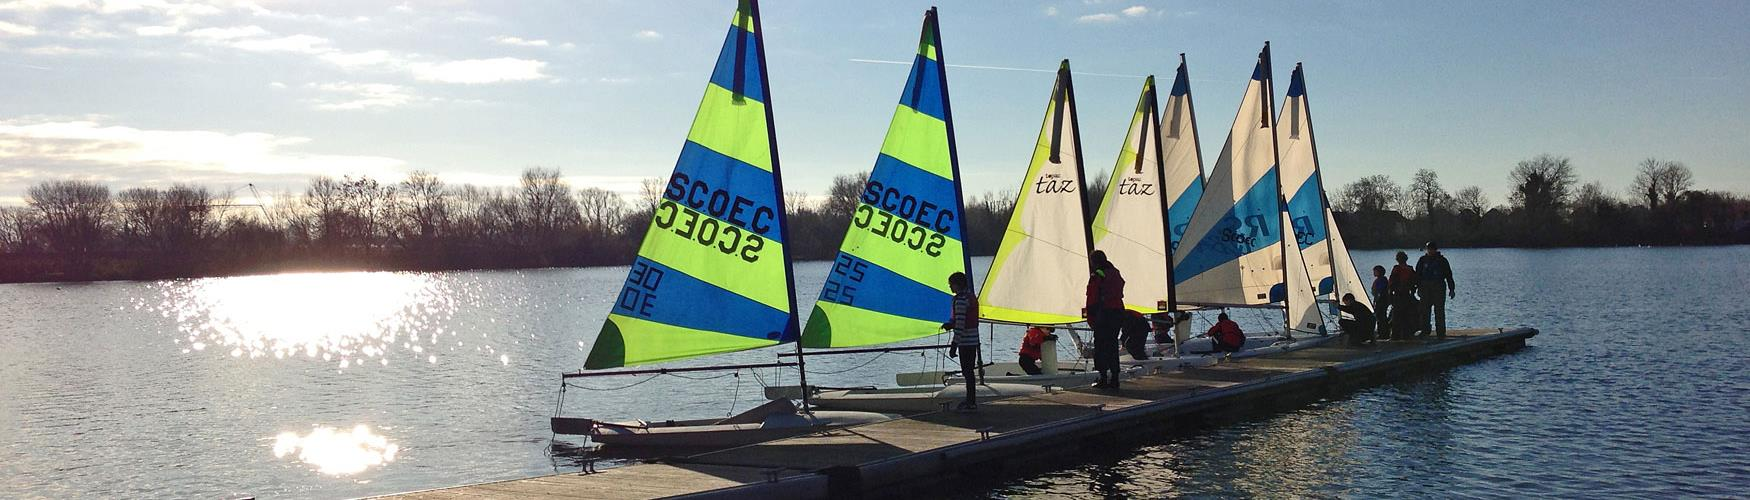 Sailing at Cotswold Water Park